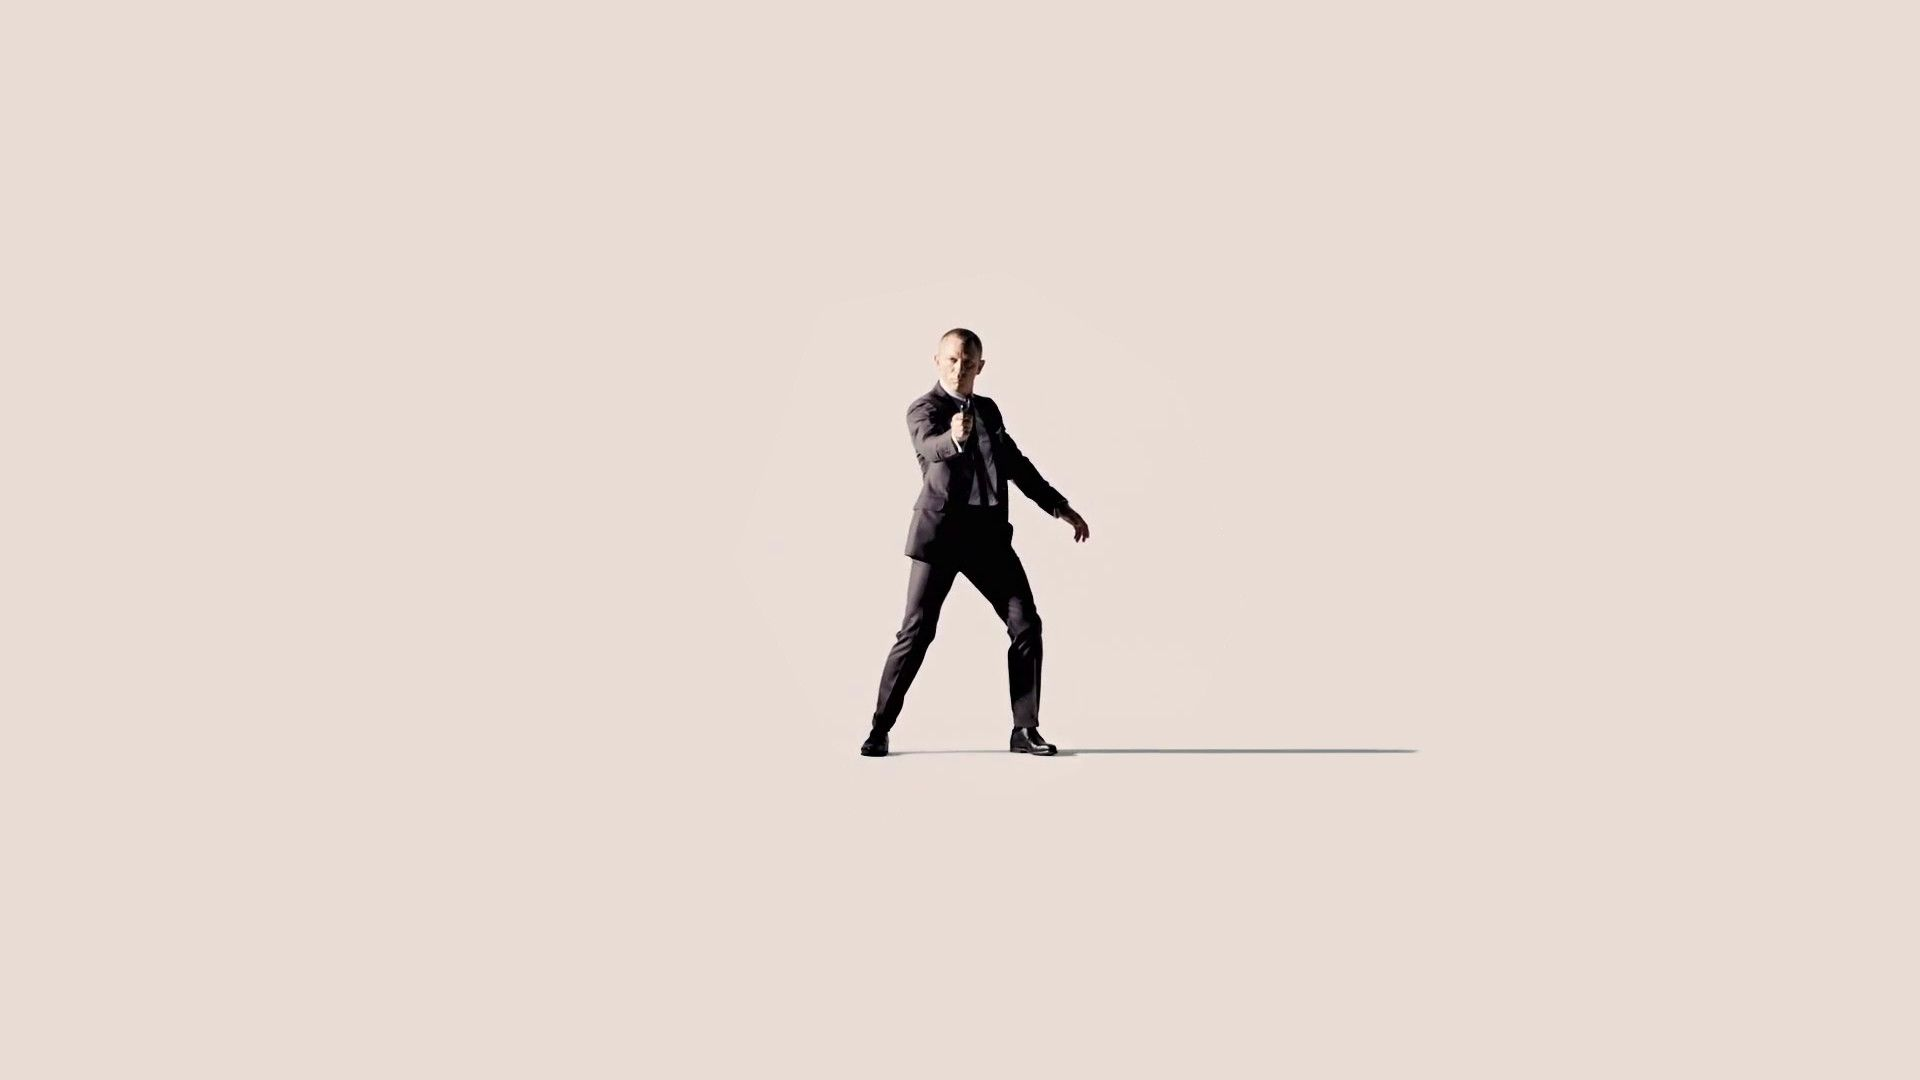 Skyfall wallpapers top free skyfall backgrounds - James bond wallpaper iphone 5 ...